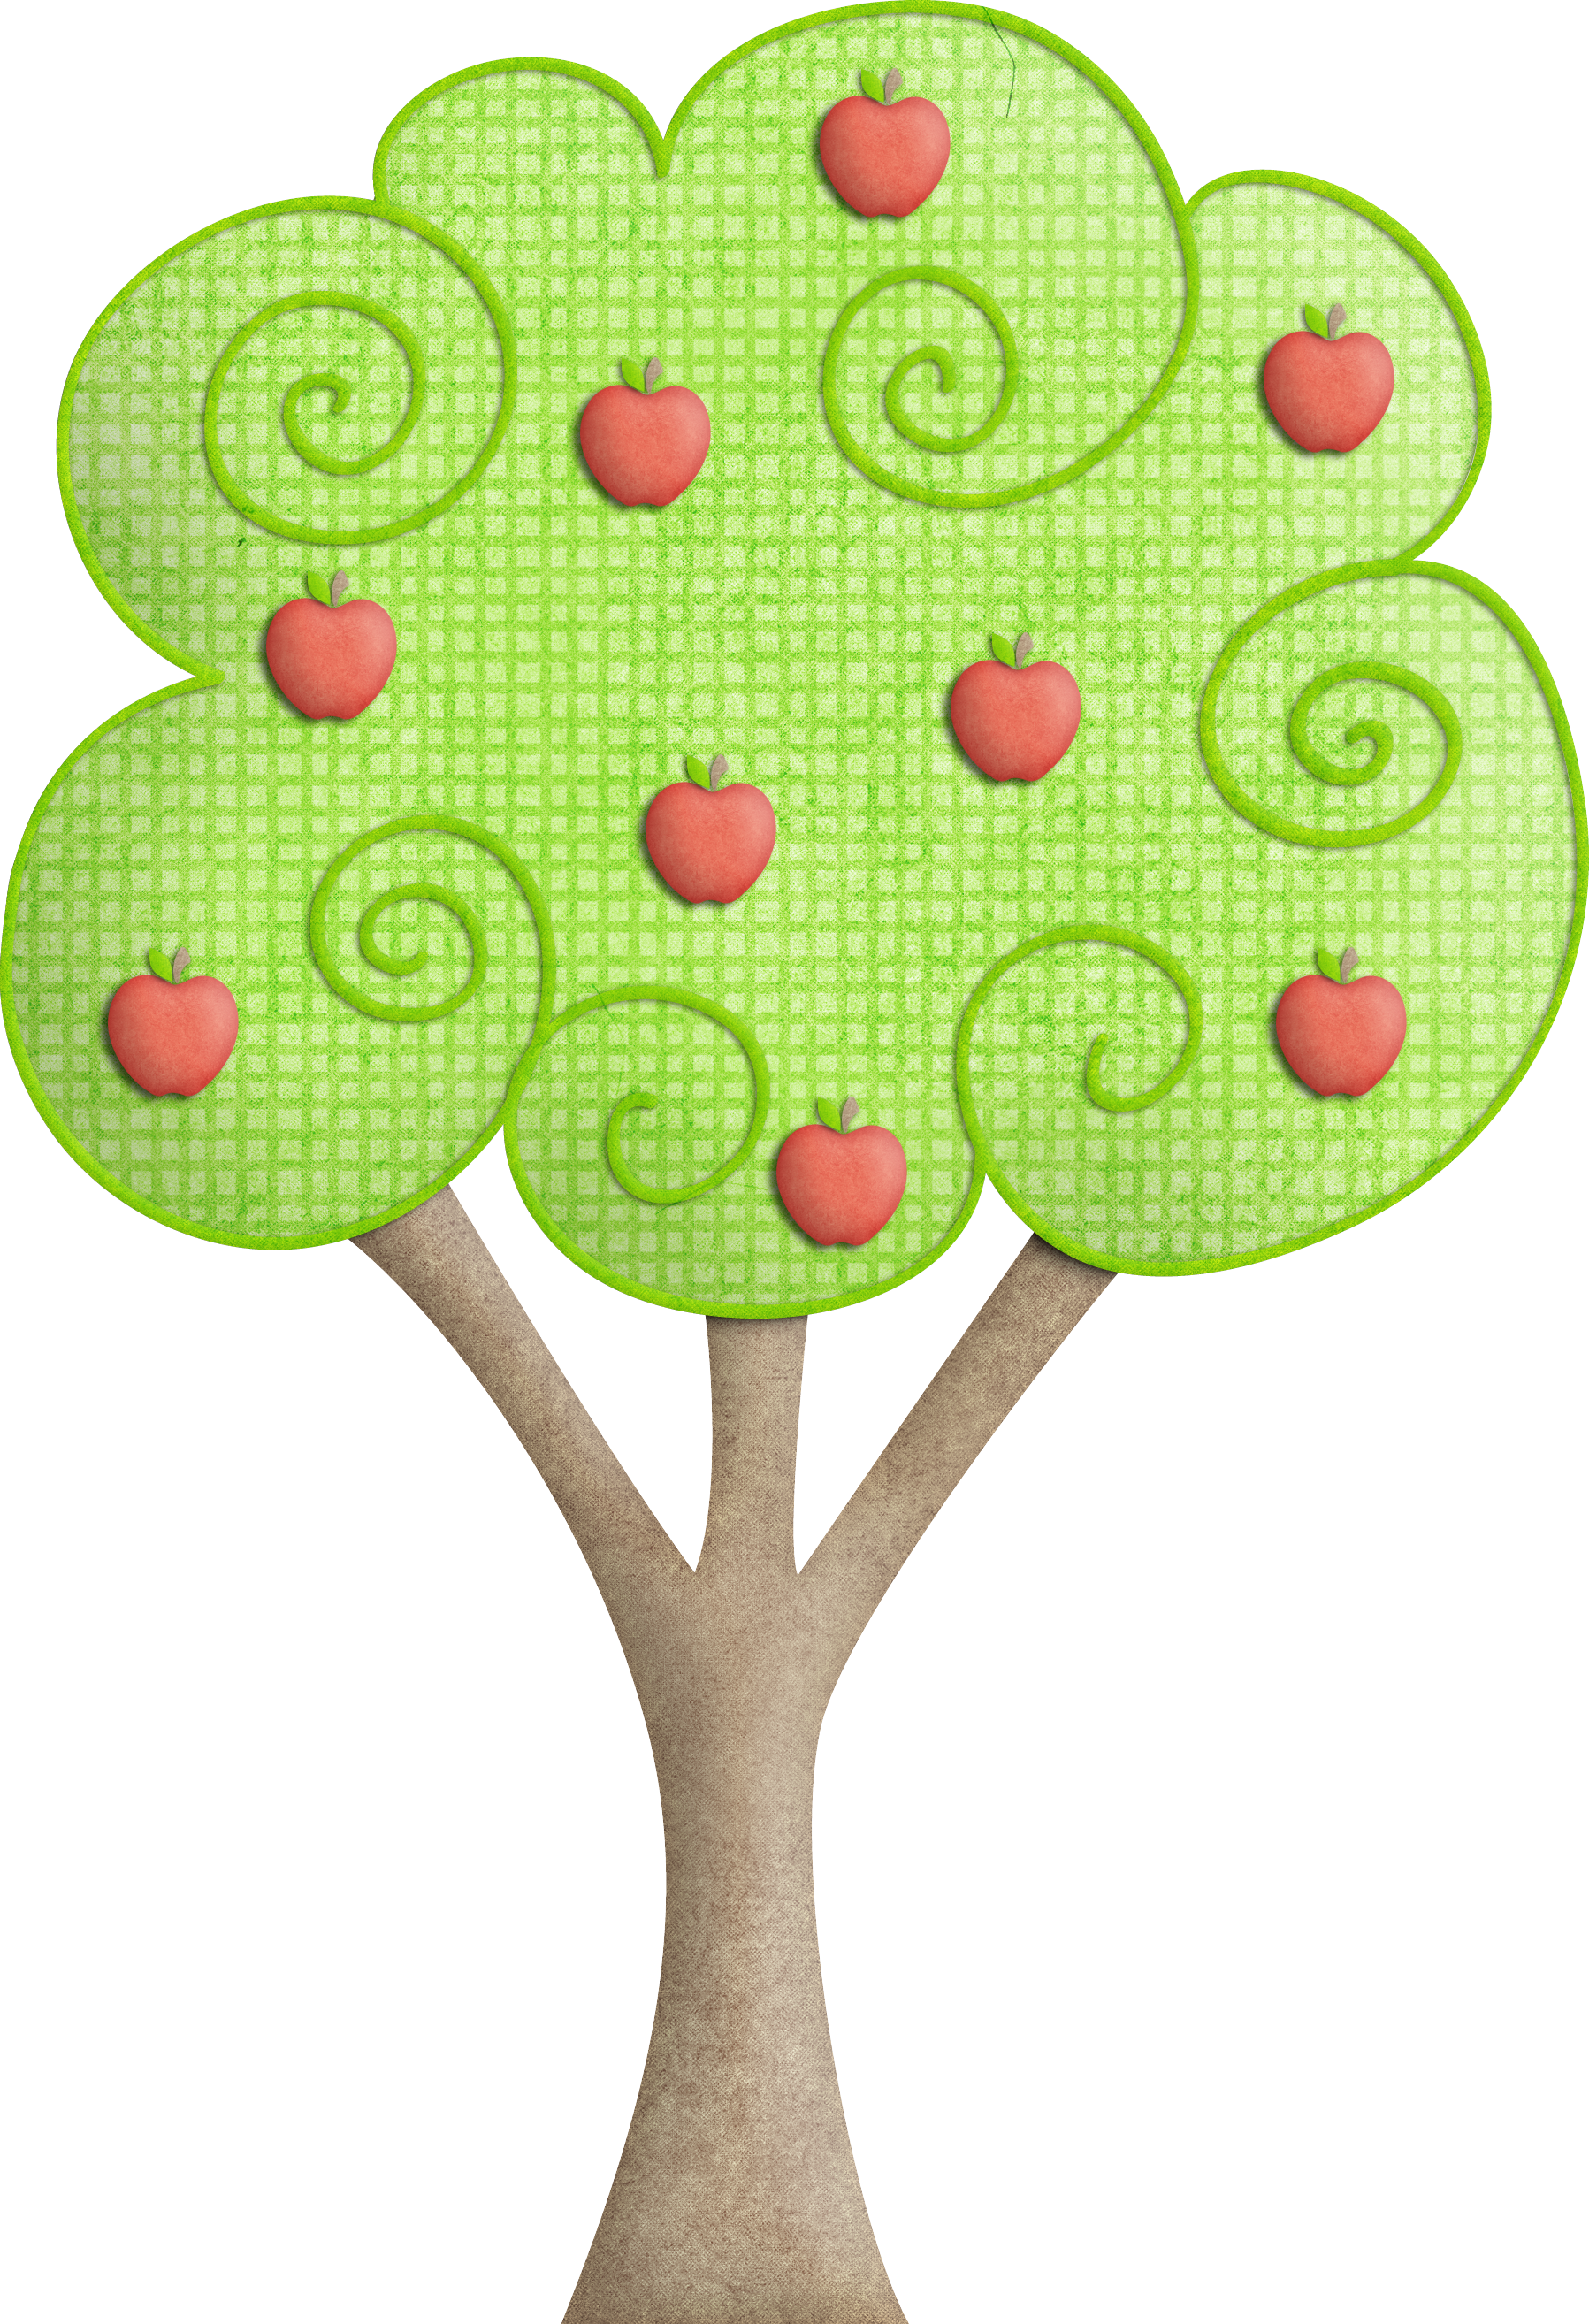 Apple tree drawing clipart clip freeuse download Tree Drawing Clip art - Apple Tree 1797*2628 transprent Png Free ... clip freeuse download